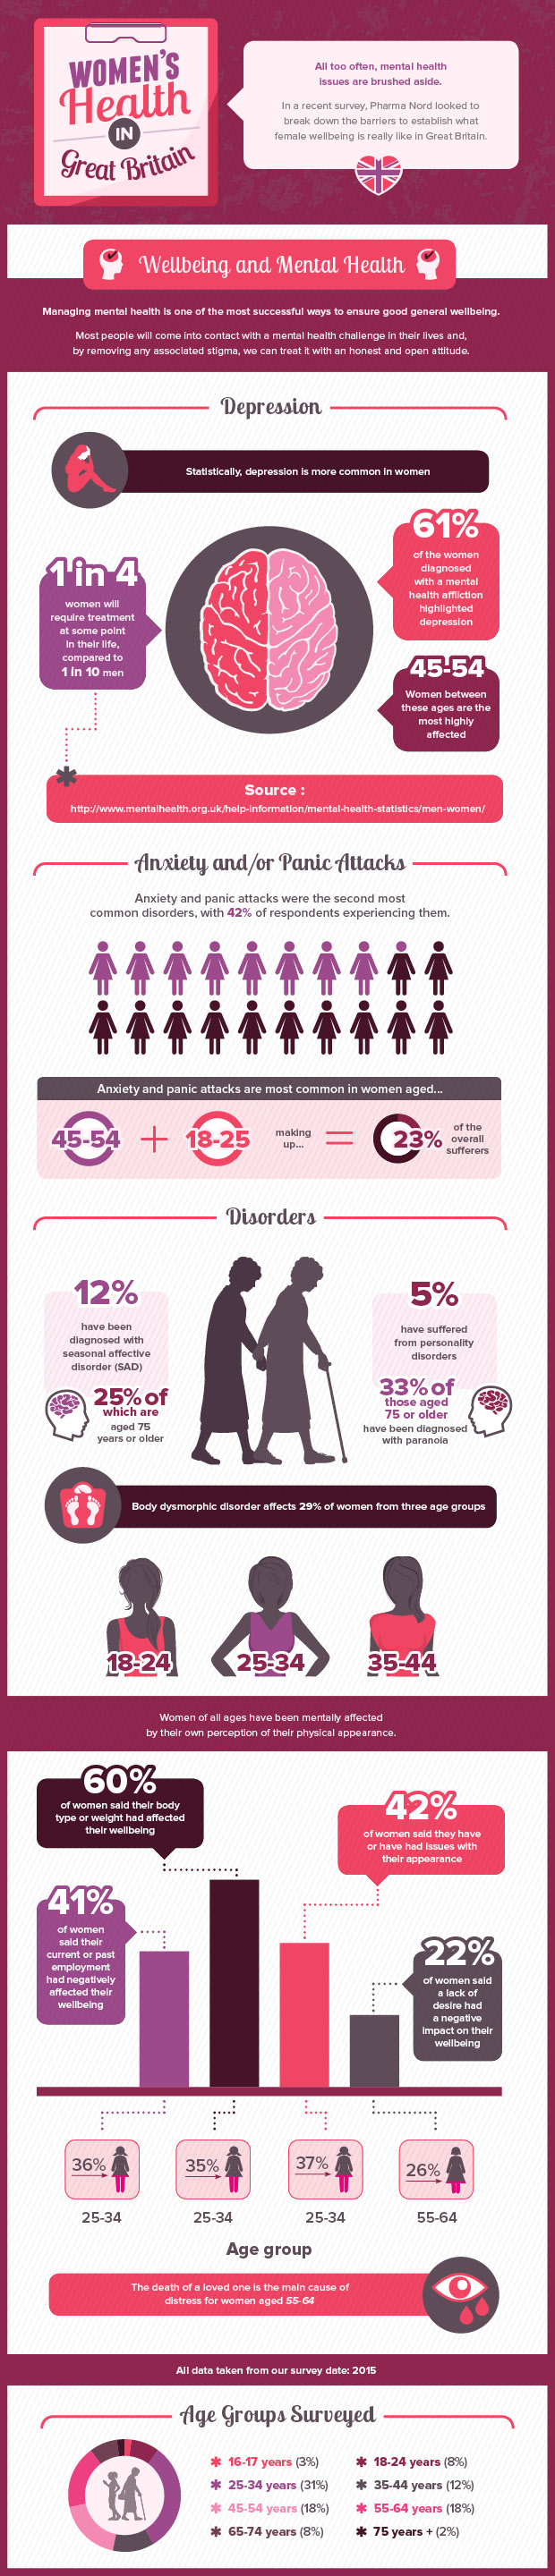 Womens health infographic- wellbeing and mental health